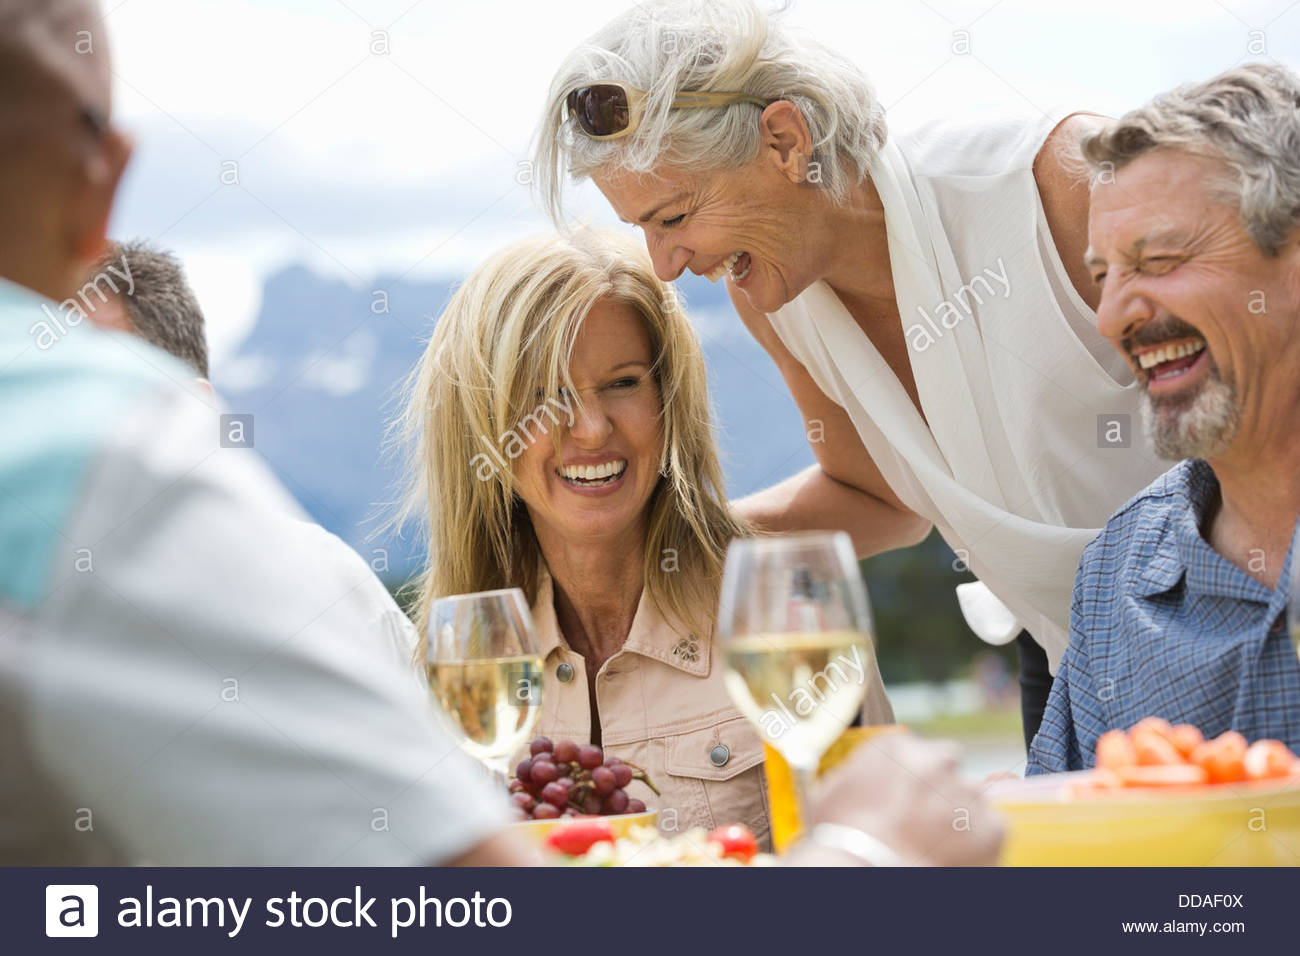 Mature woman laughing with friends - Stock Image